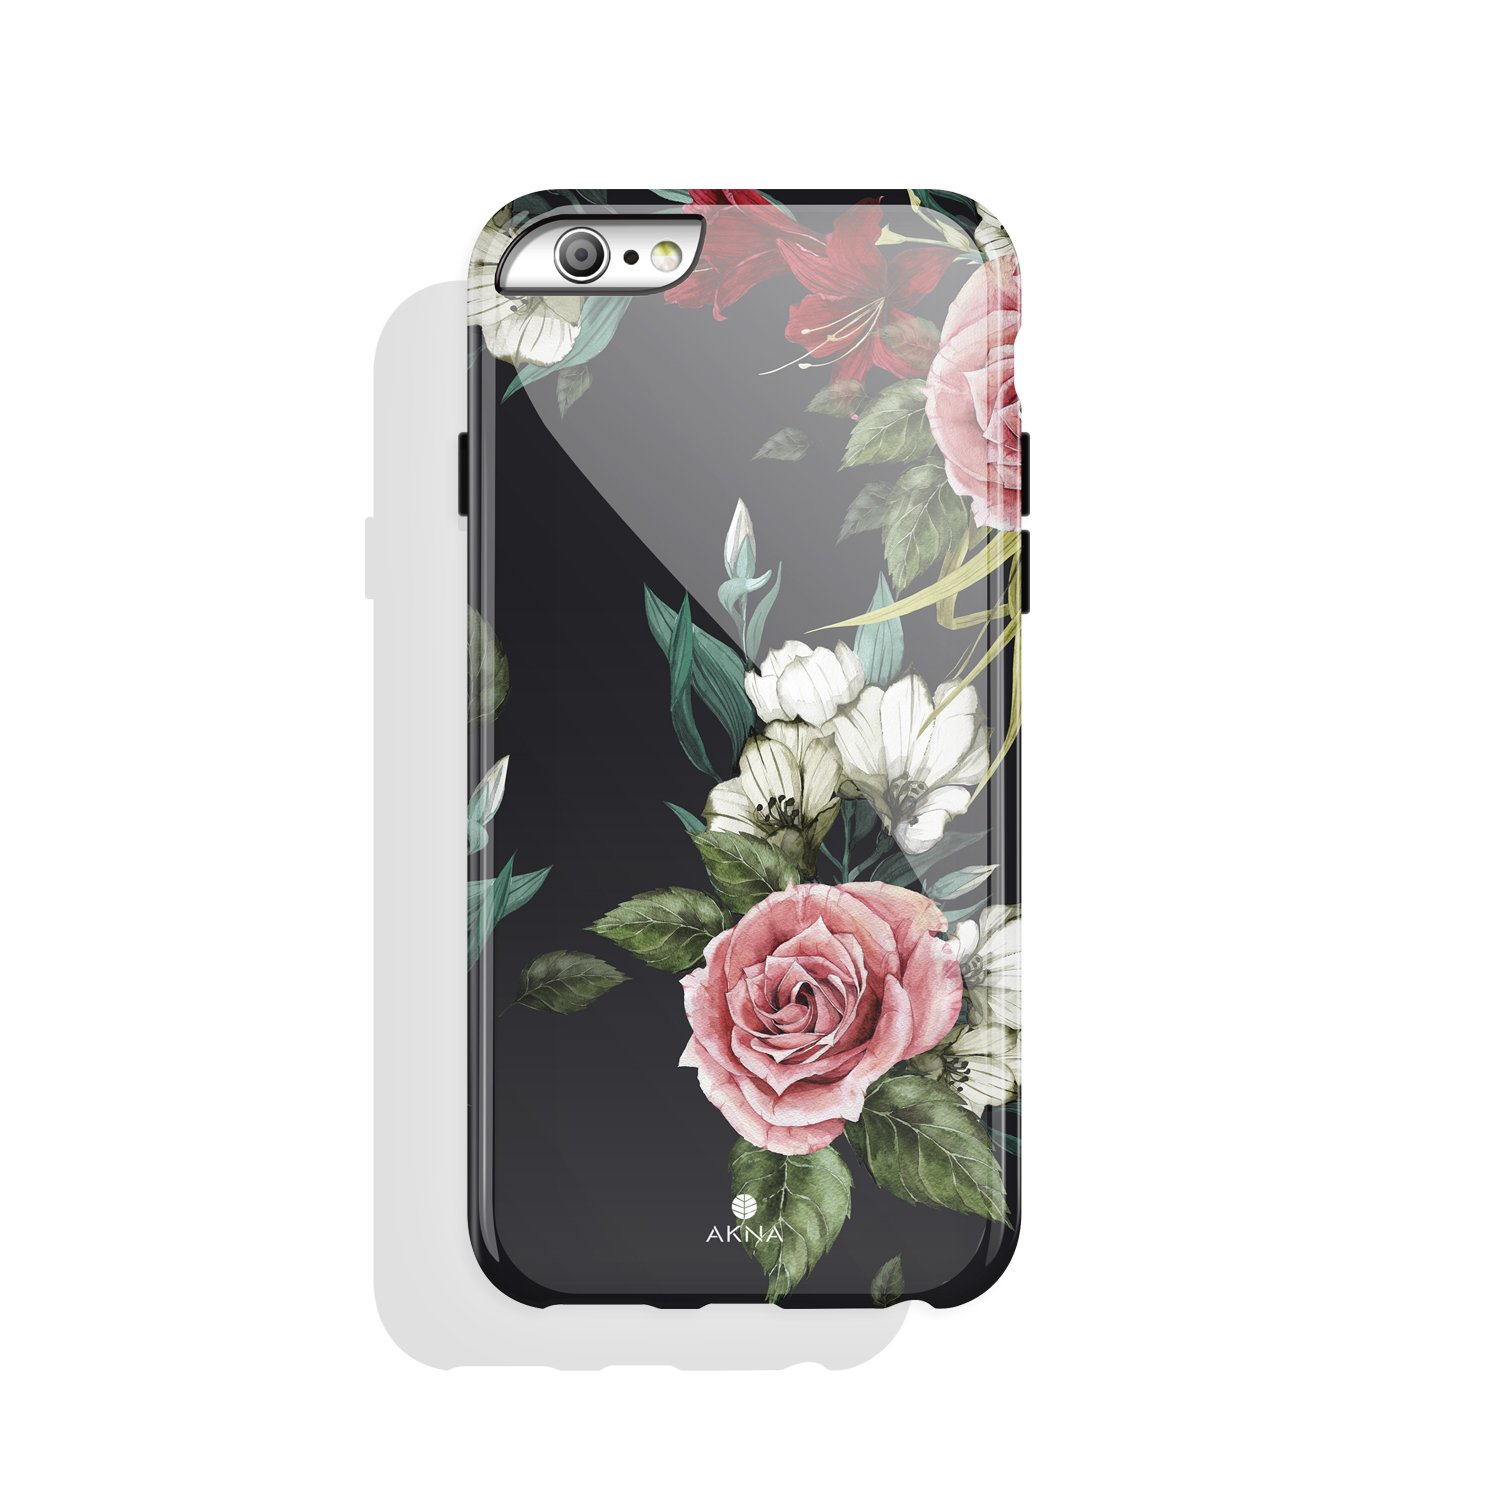 iPhone 6/6s case for girls, Akna Collection High Impact Flexible Silicon Case for both iPhone 6 & iPhone 6s [Roses And Lilies](750-U.S)